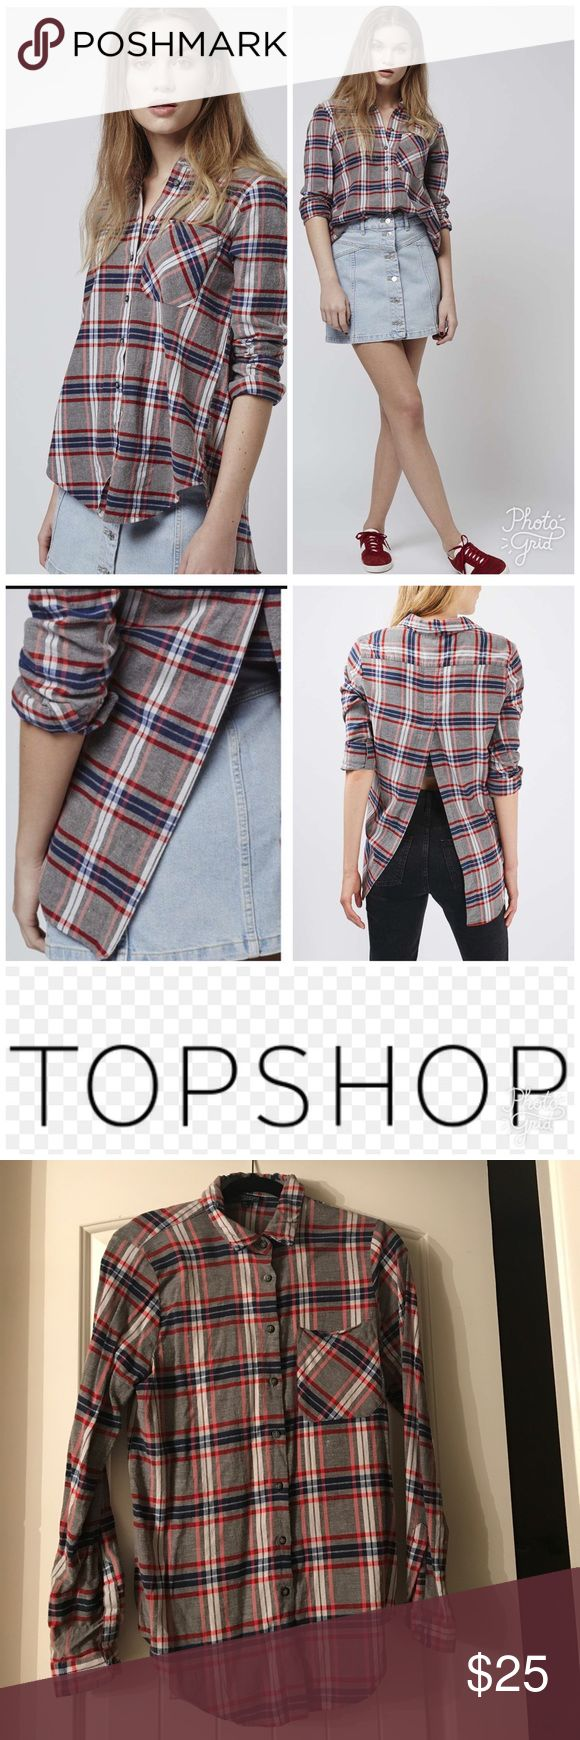 Topshop Tartan Winnie Shirt - US size 6 Get a classic look for now with this grey check tartan winnie shirt. Very chic with a cigarette trouser and ballerina flats. Machine wash. Topshop Tops Button Down Shirts